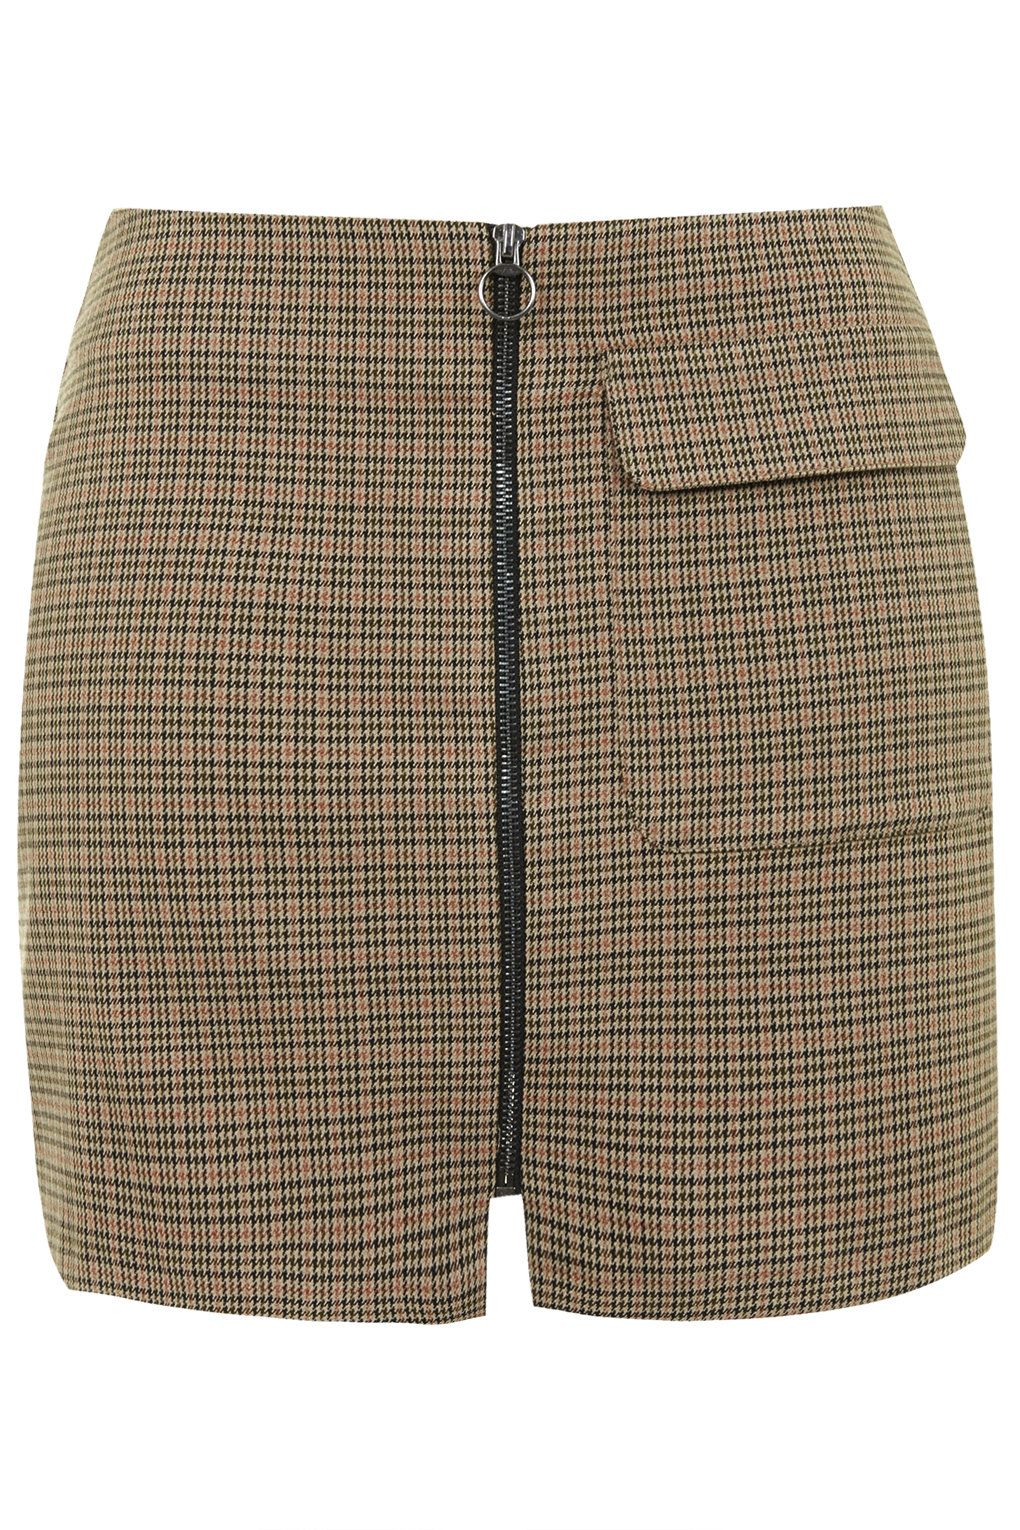 Checked A-Line Skirt - Sale - Sale & Offers | Topshop, Topshop ...